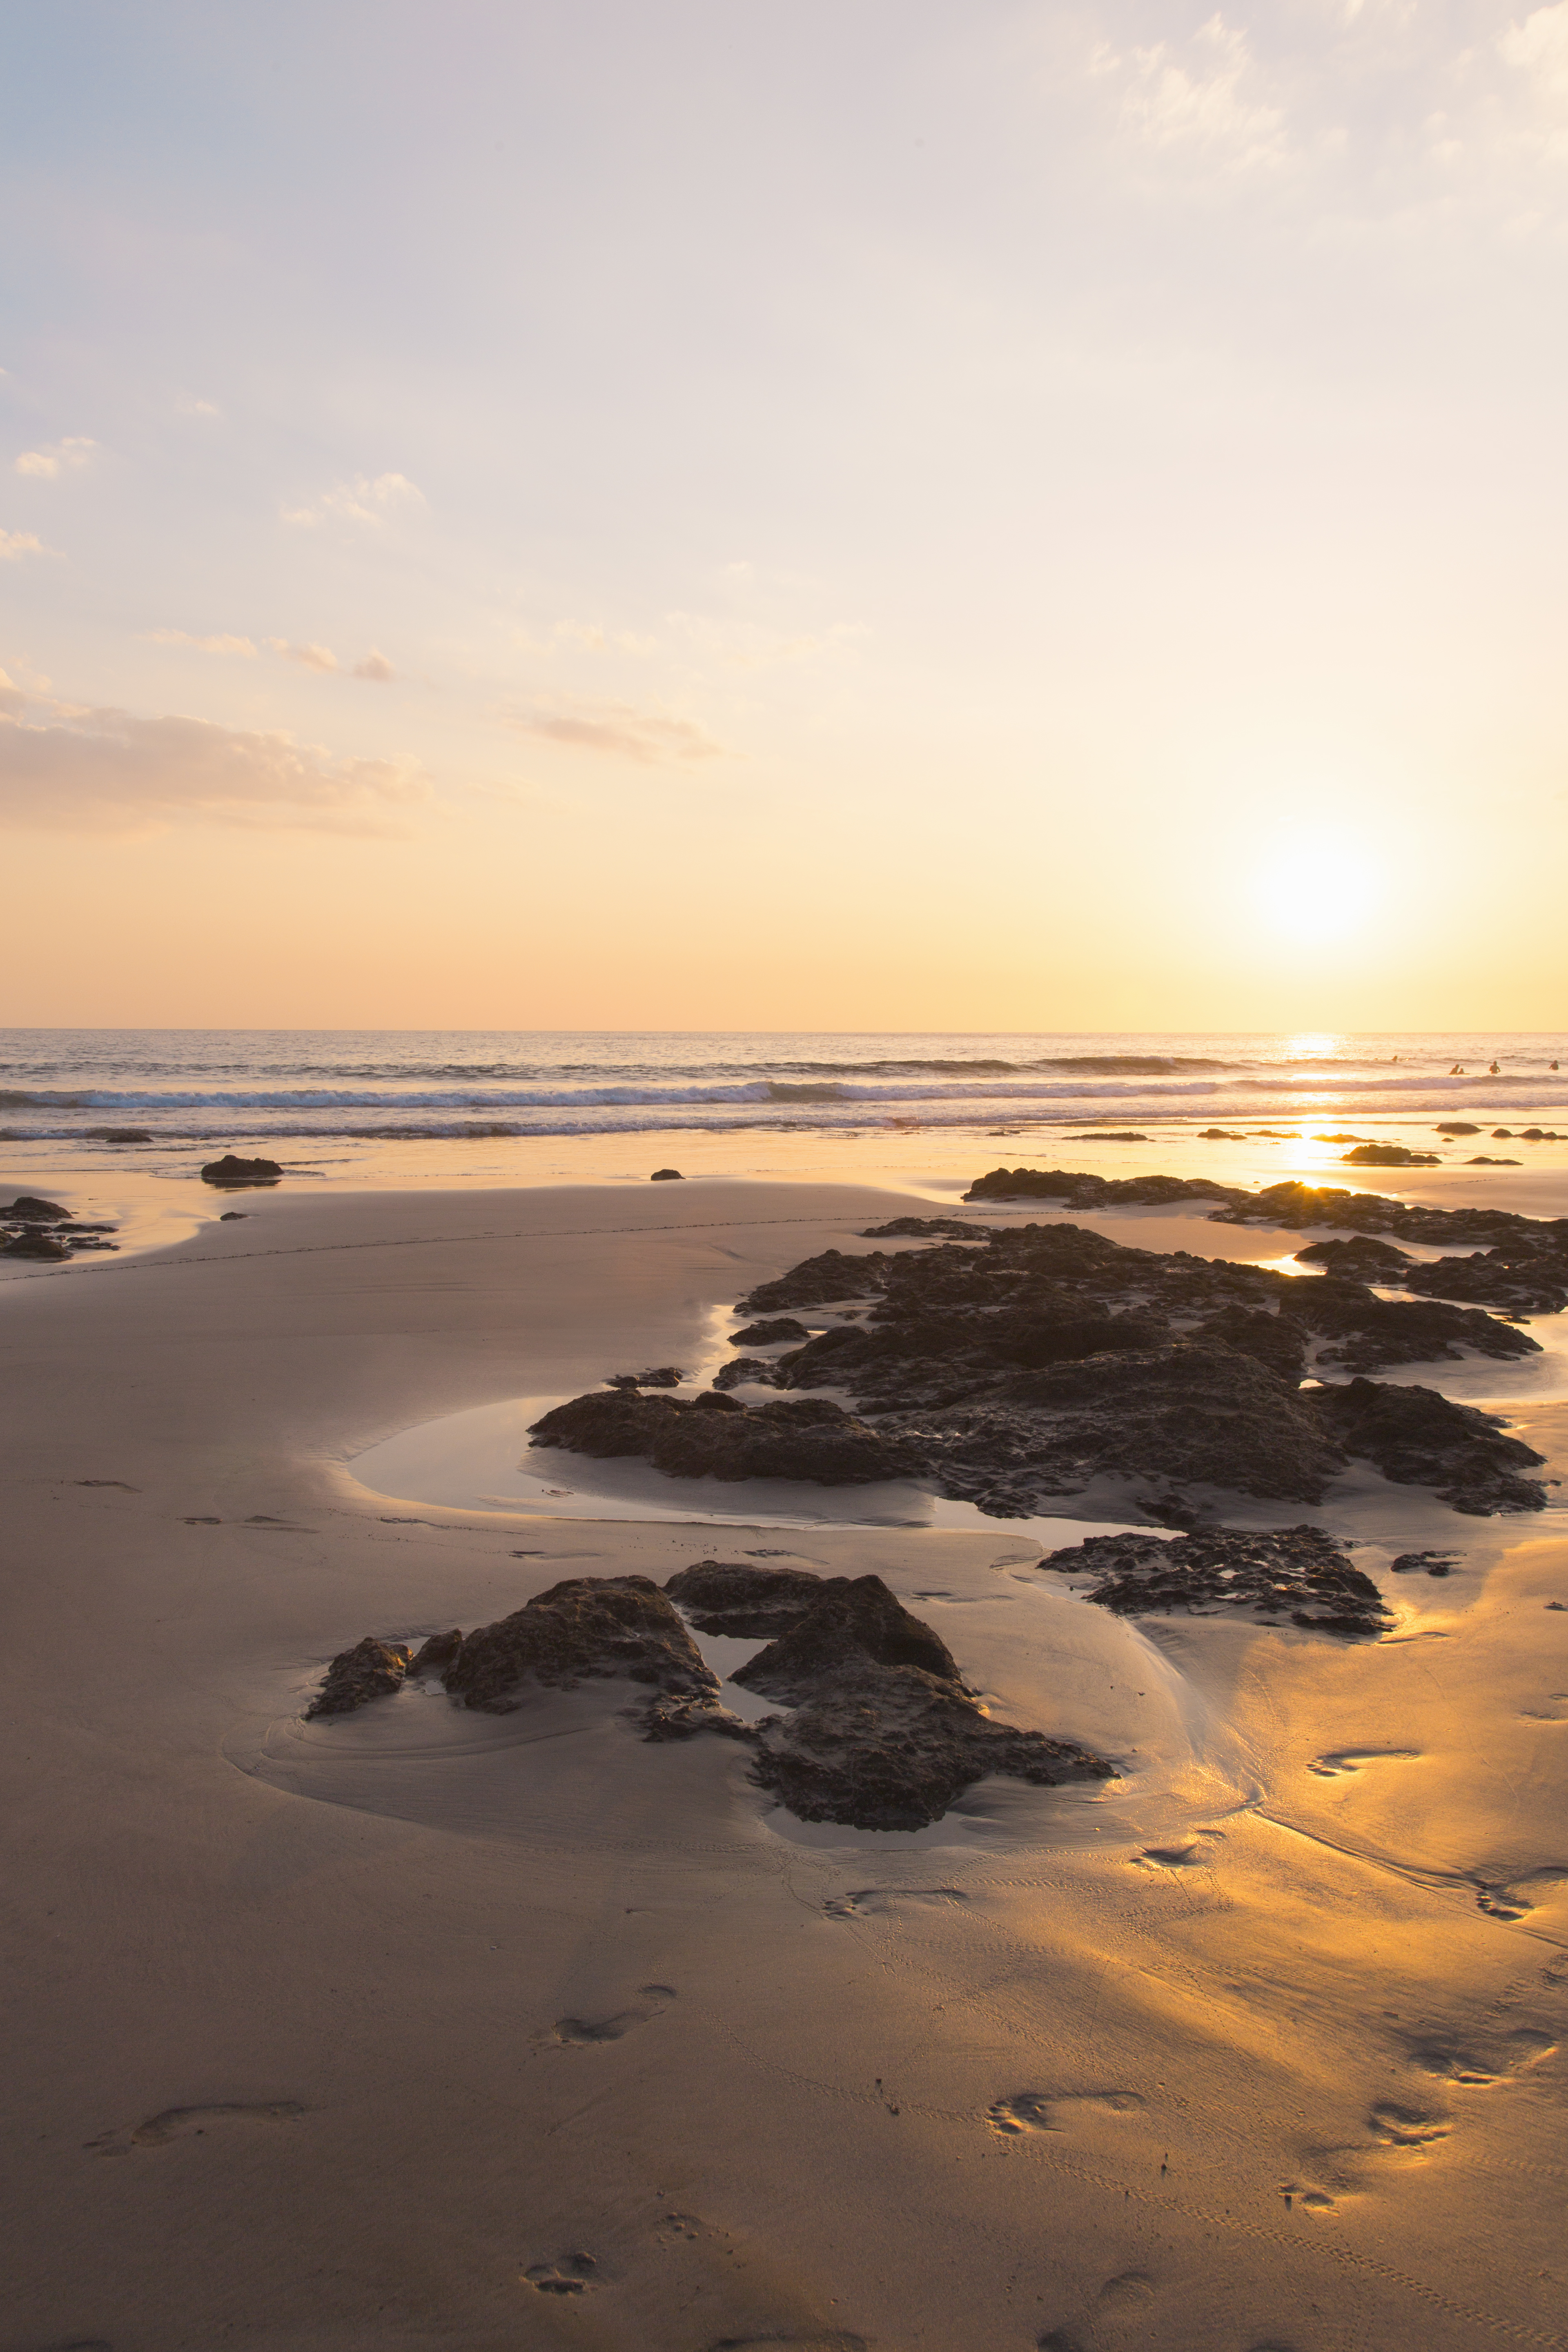 Northwestern Car Insurance >> Playa Negra | Cahuita, Costa Rica Attractions - Lonely Planet